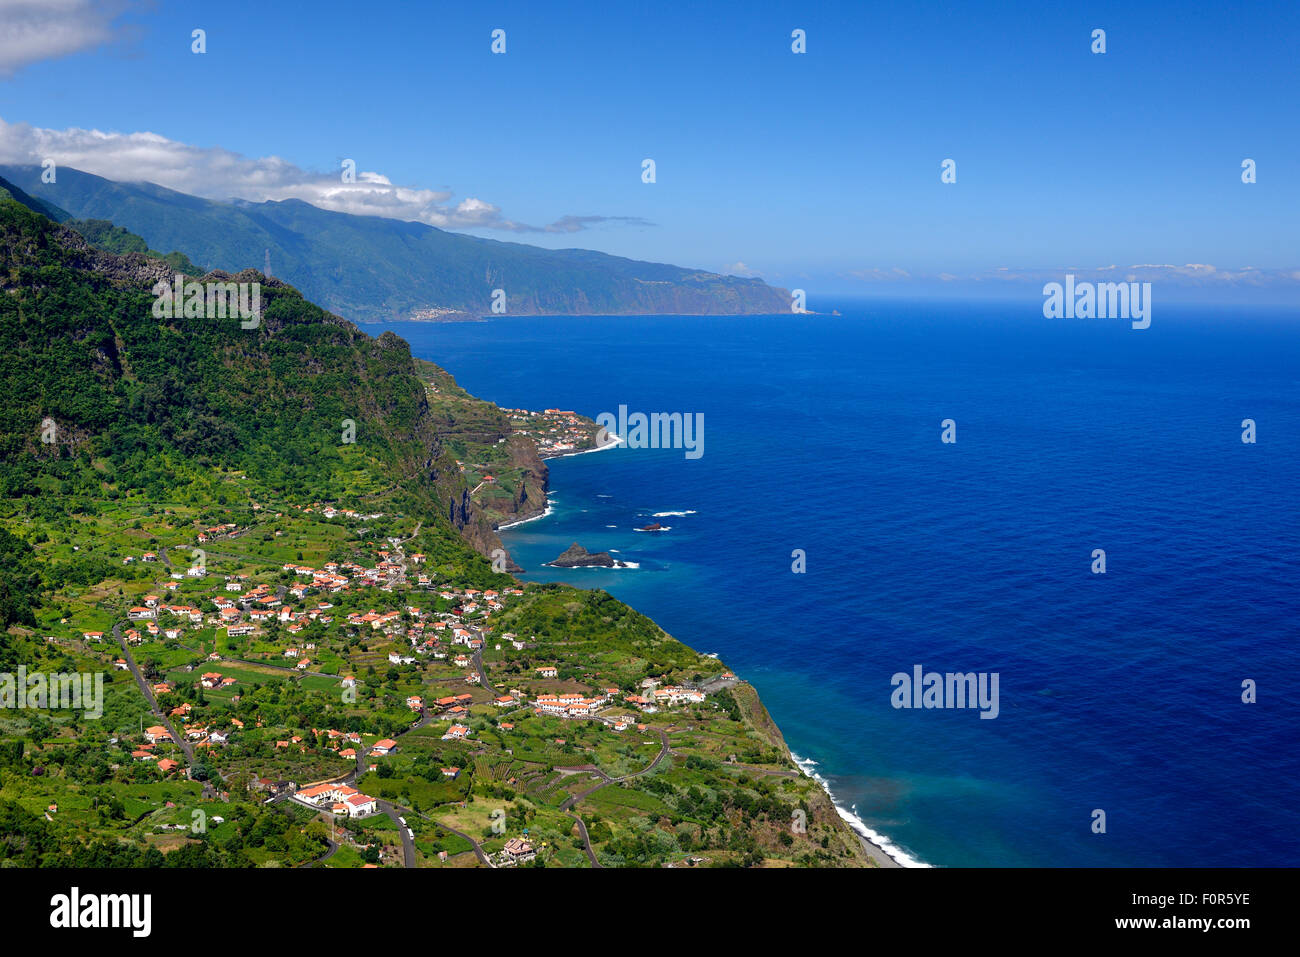 North coast with the village of Arco de Sao Jorge, Madeira, Portugal - Stock Image